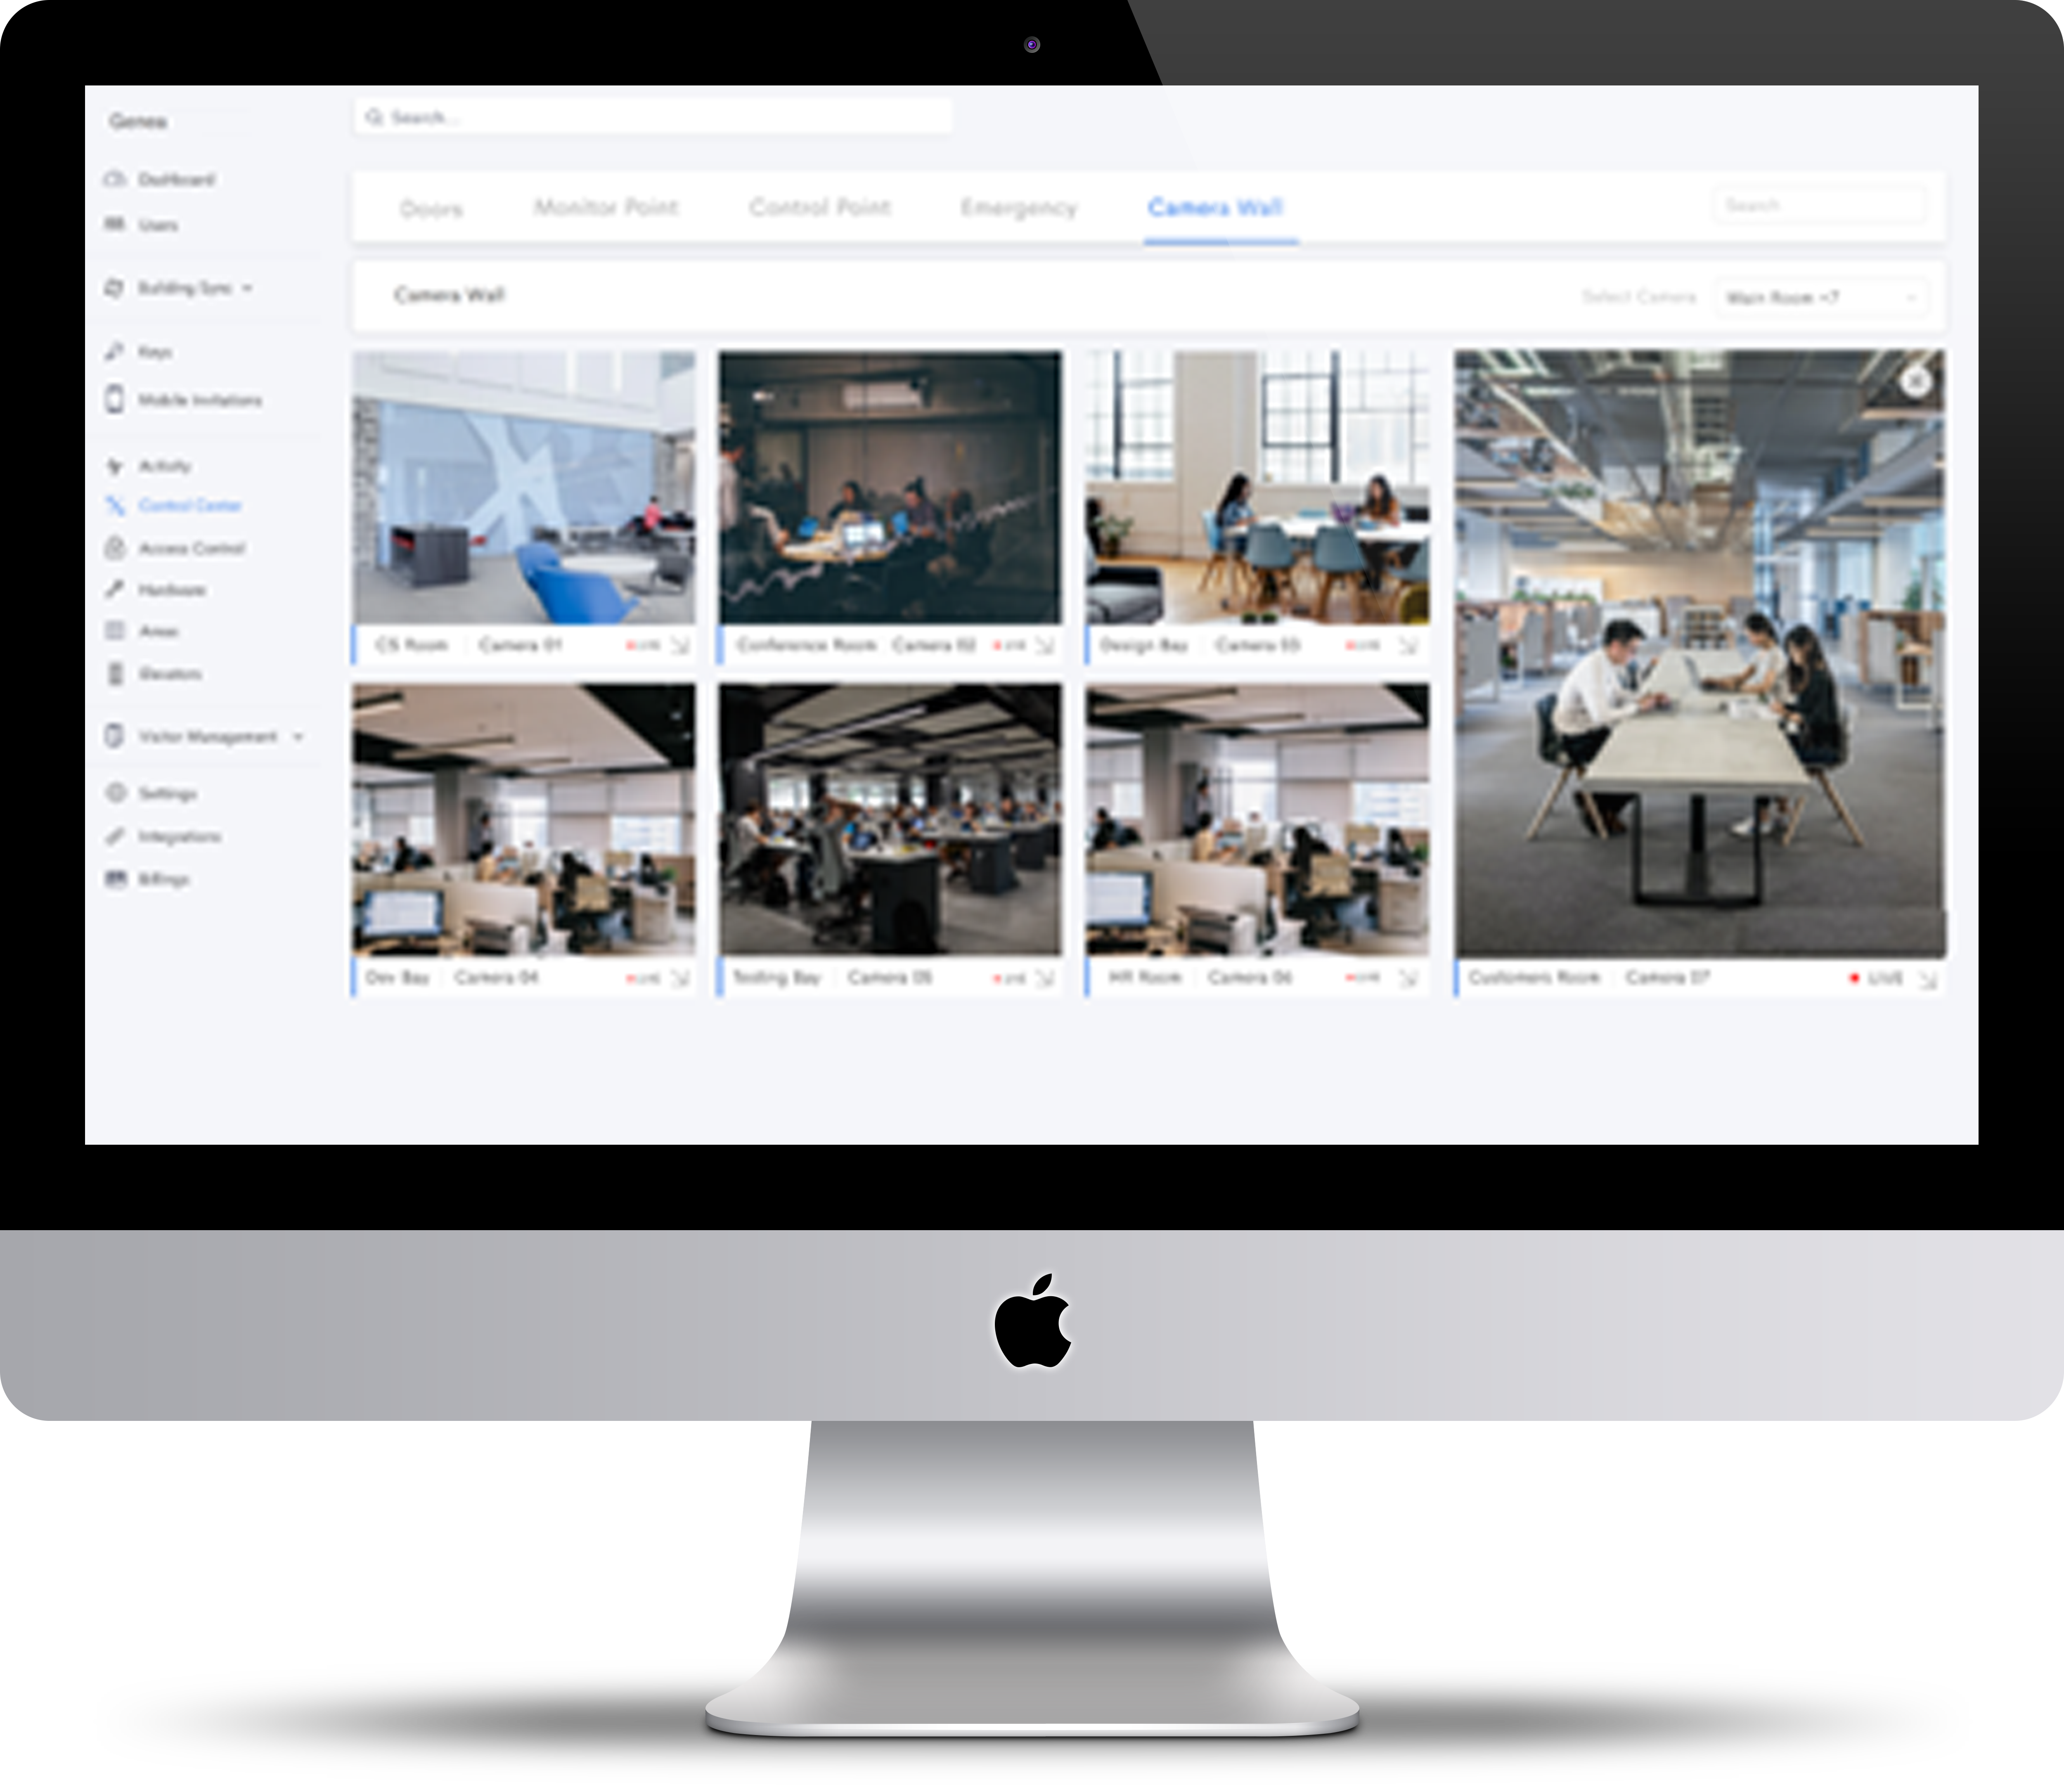 Genea's integrations with cloud-based video management software allows multiple video feeds to be managed on one cohesive dashboard.